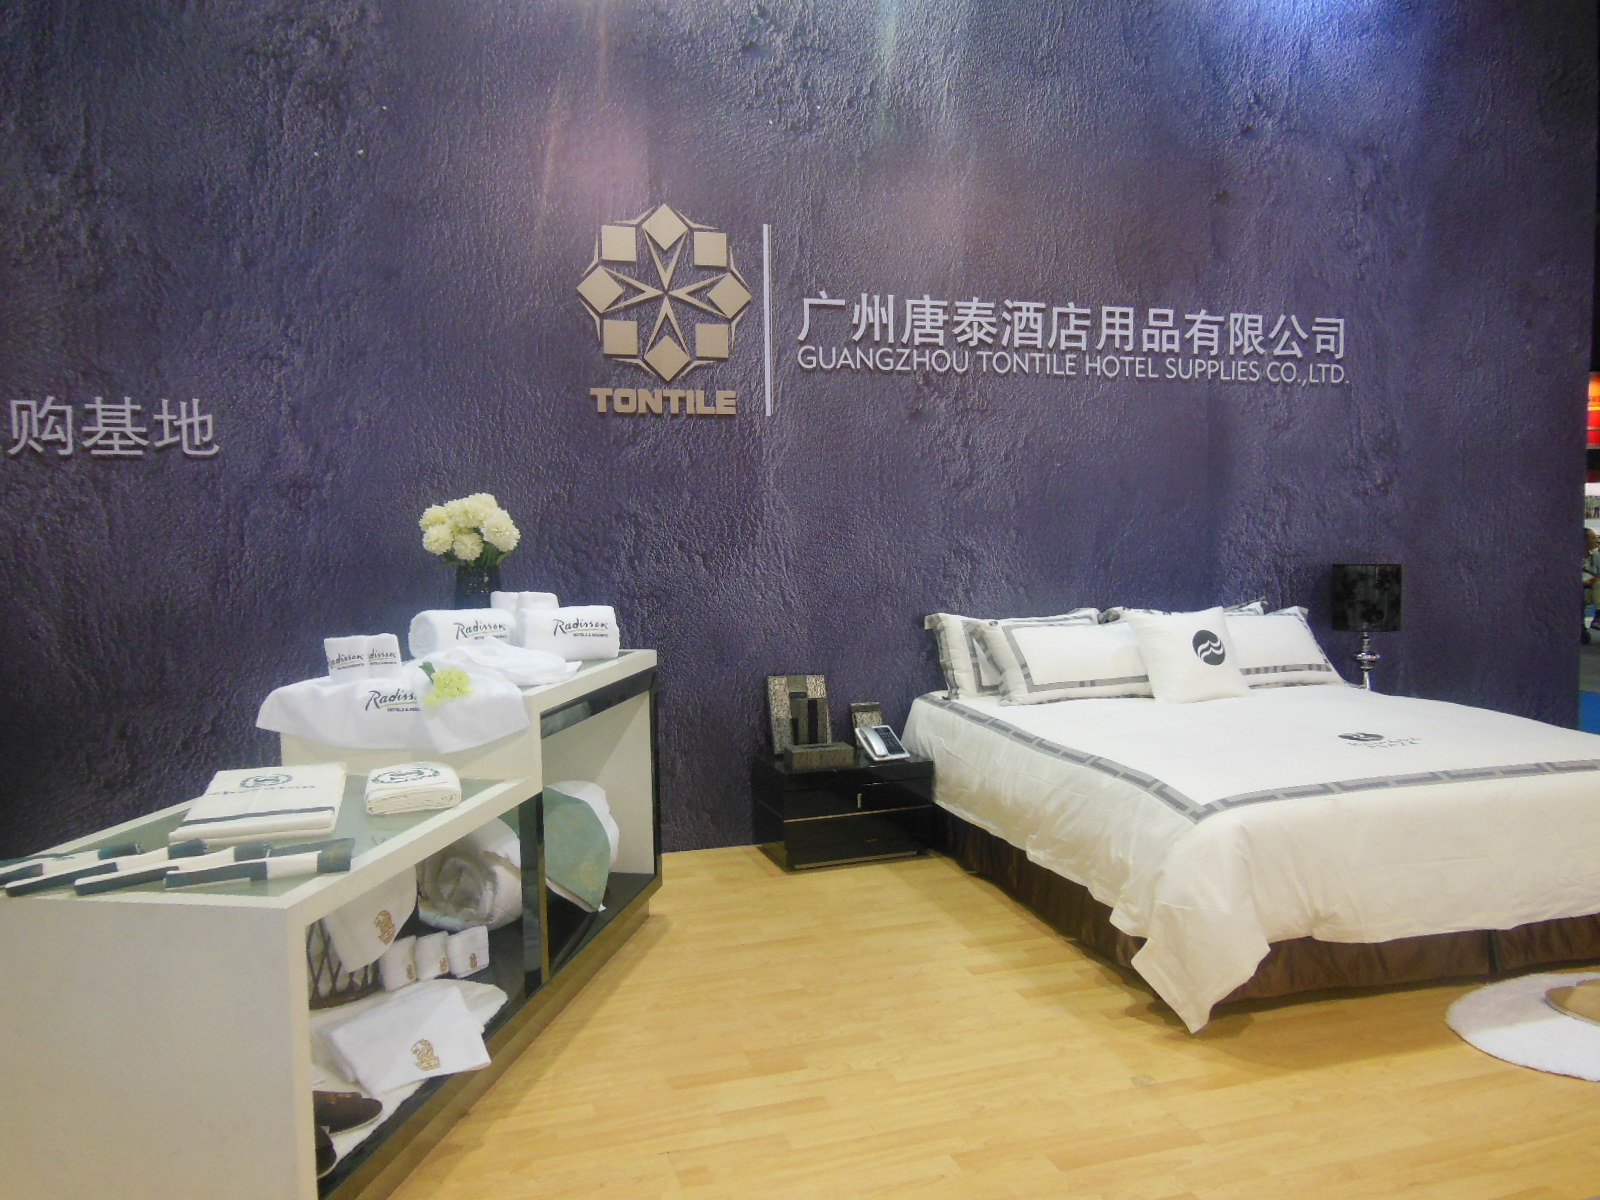 Guangzhou pazhou exhibition-Tontile Linen Products